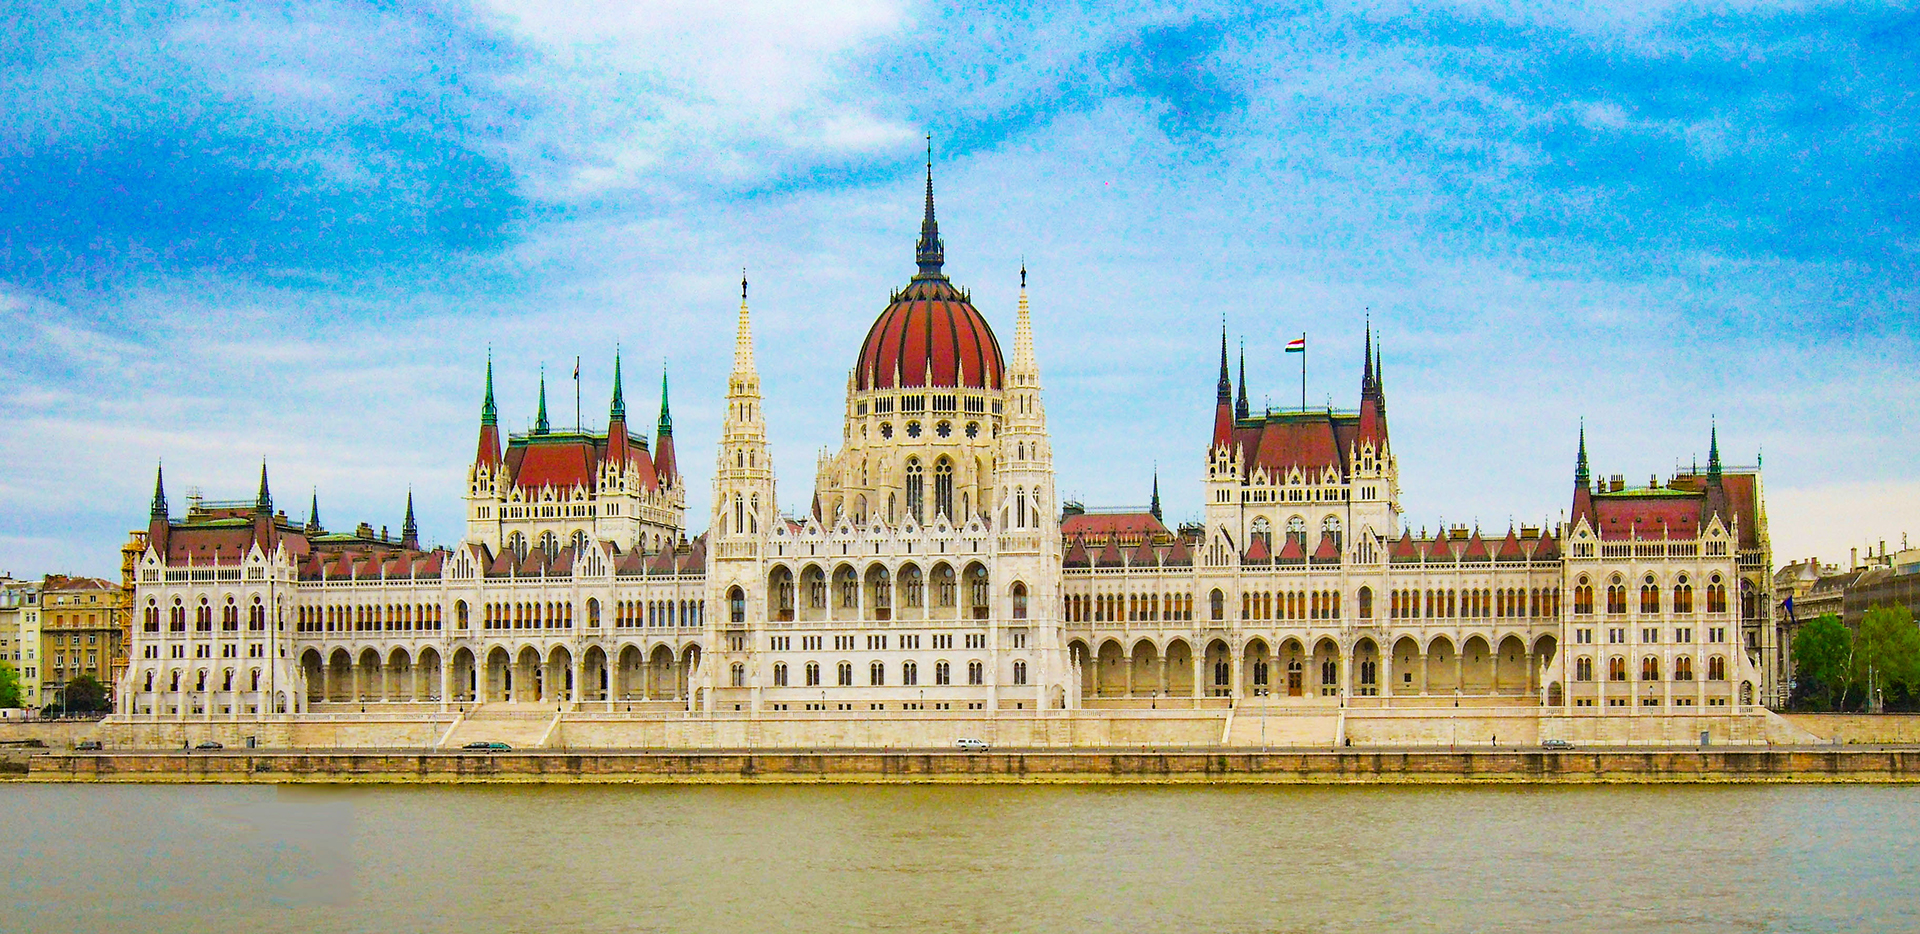 Parliament Building Across the Danube River